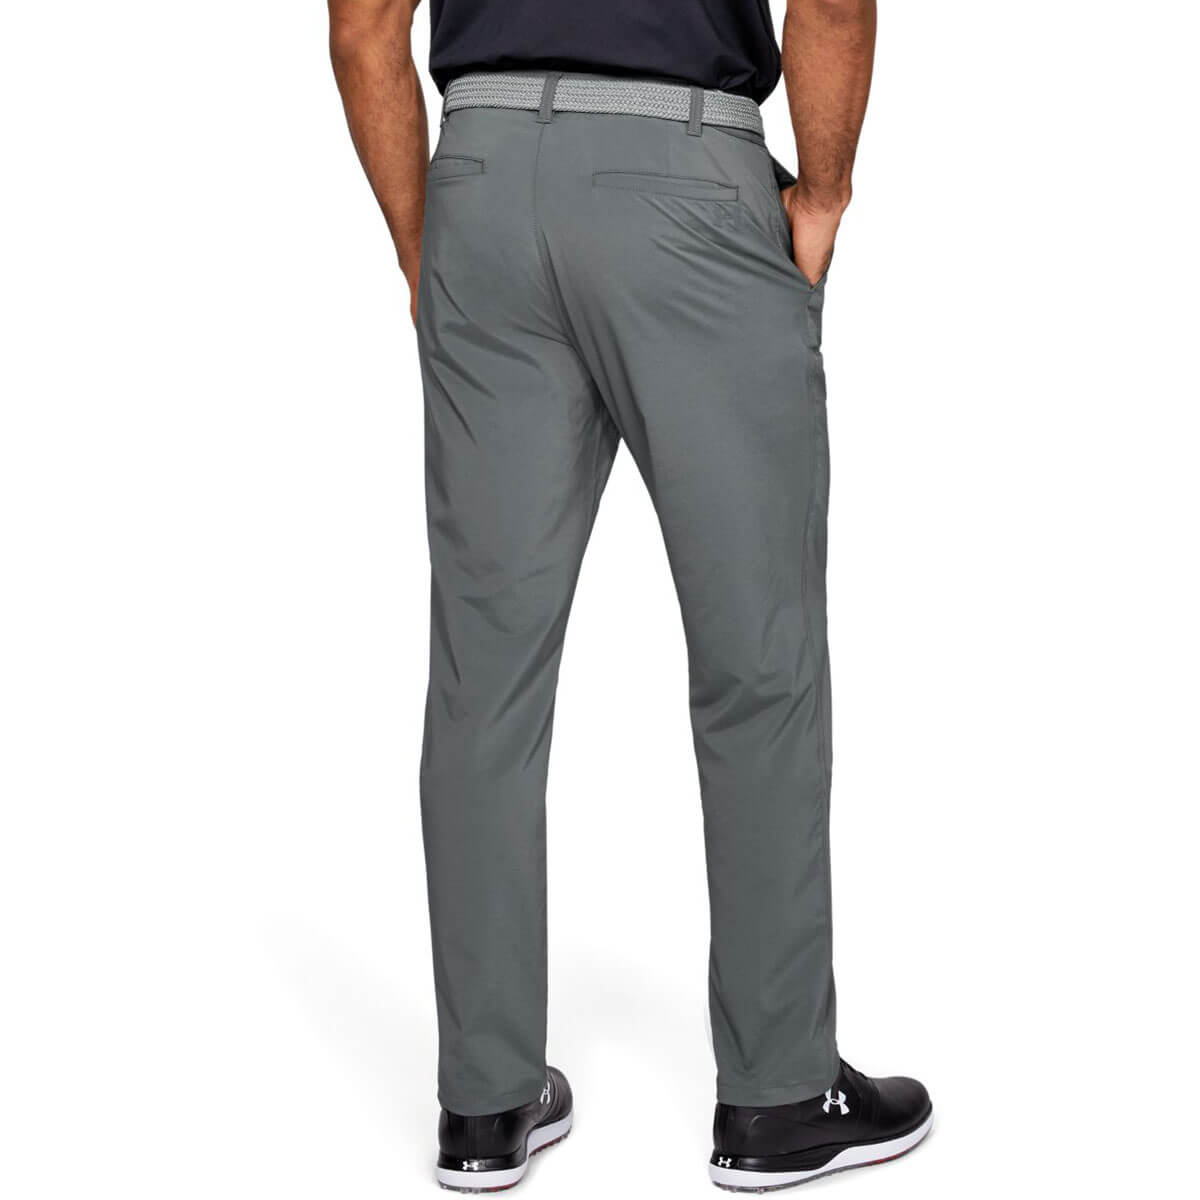 Under-Armour-Mens-2019-EU-Tech-Stretch-Straight-Golf-Trousers-30-OFF-RRP thumbnail 15